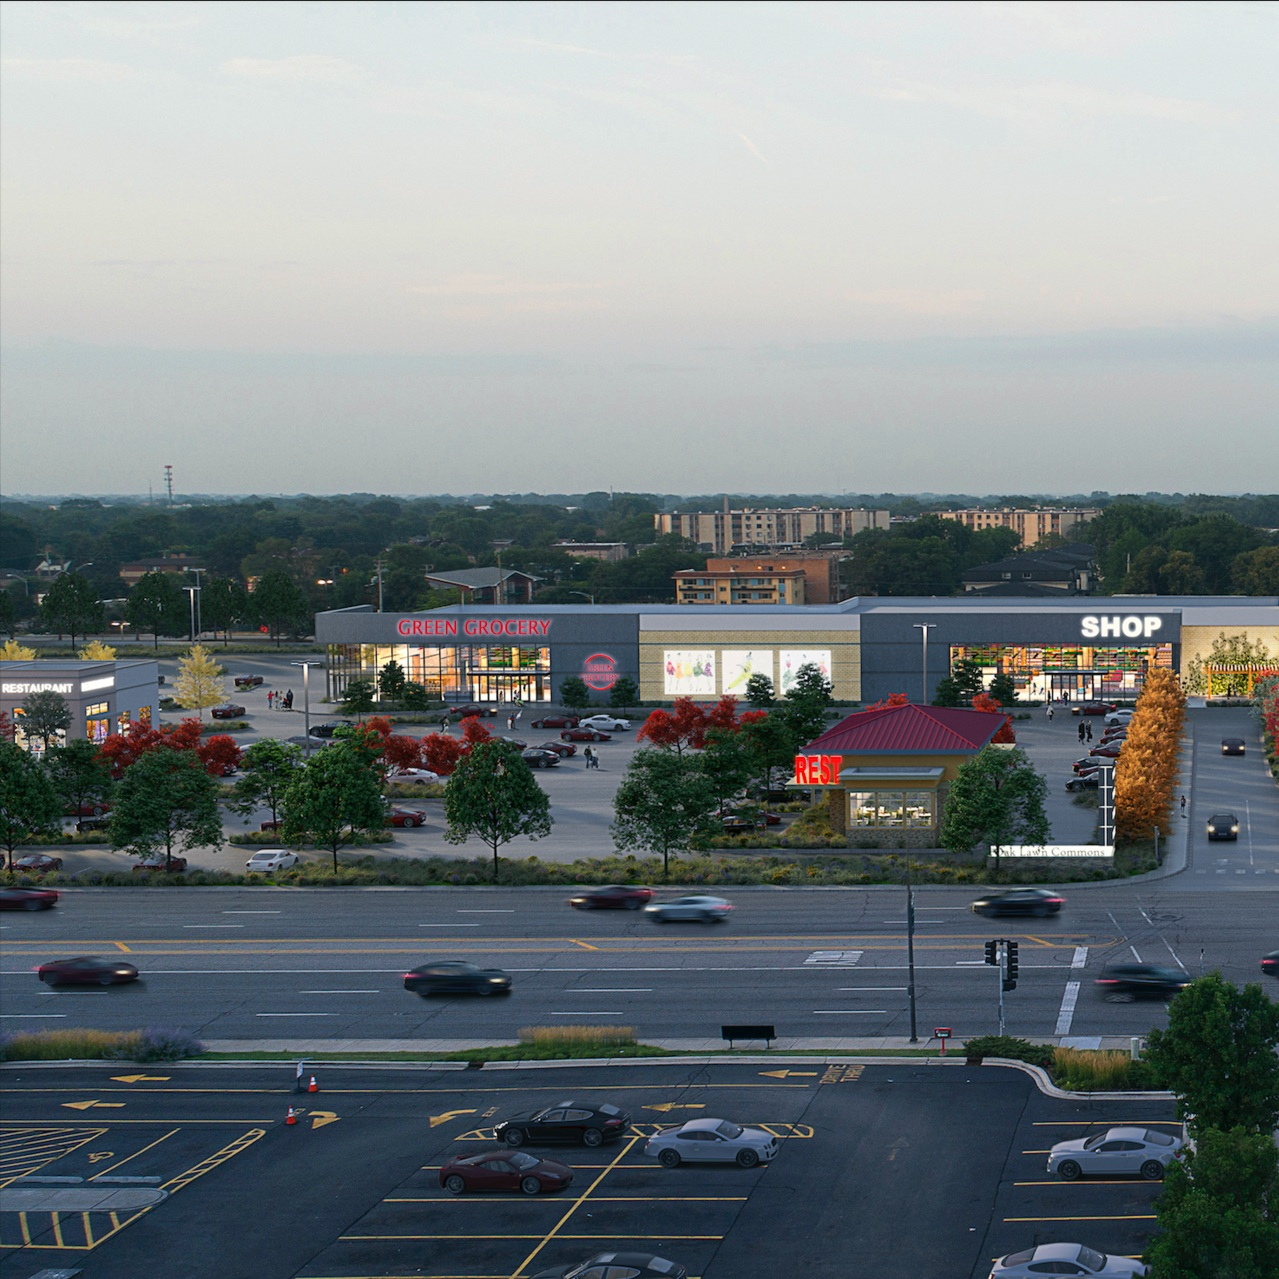 HUBBARD STREET GROUP JV ACQUIRES OAK LAWN SHOPPING CENTER; PLANS FOR TURNAROUND - THE REAL DEAL, 04.02.2018